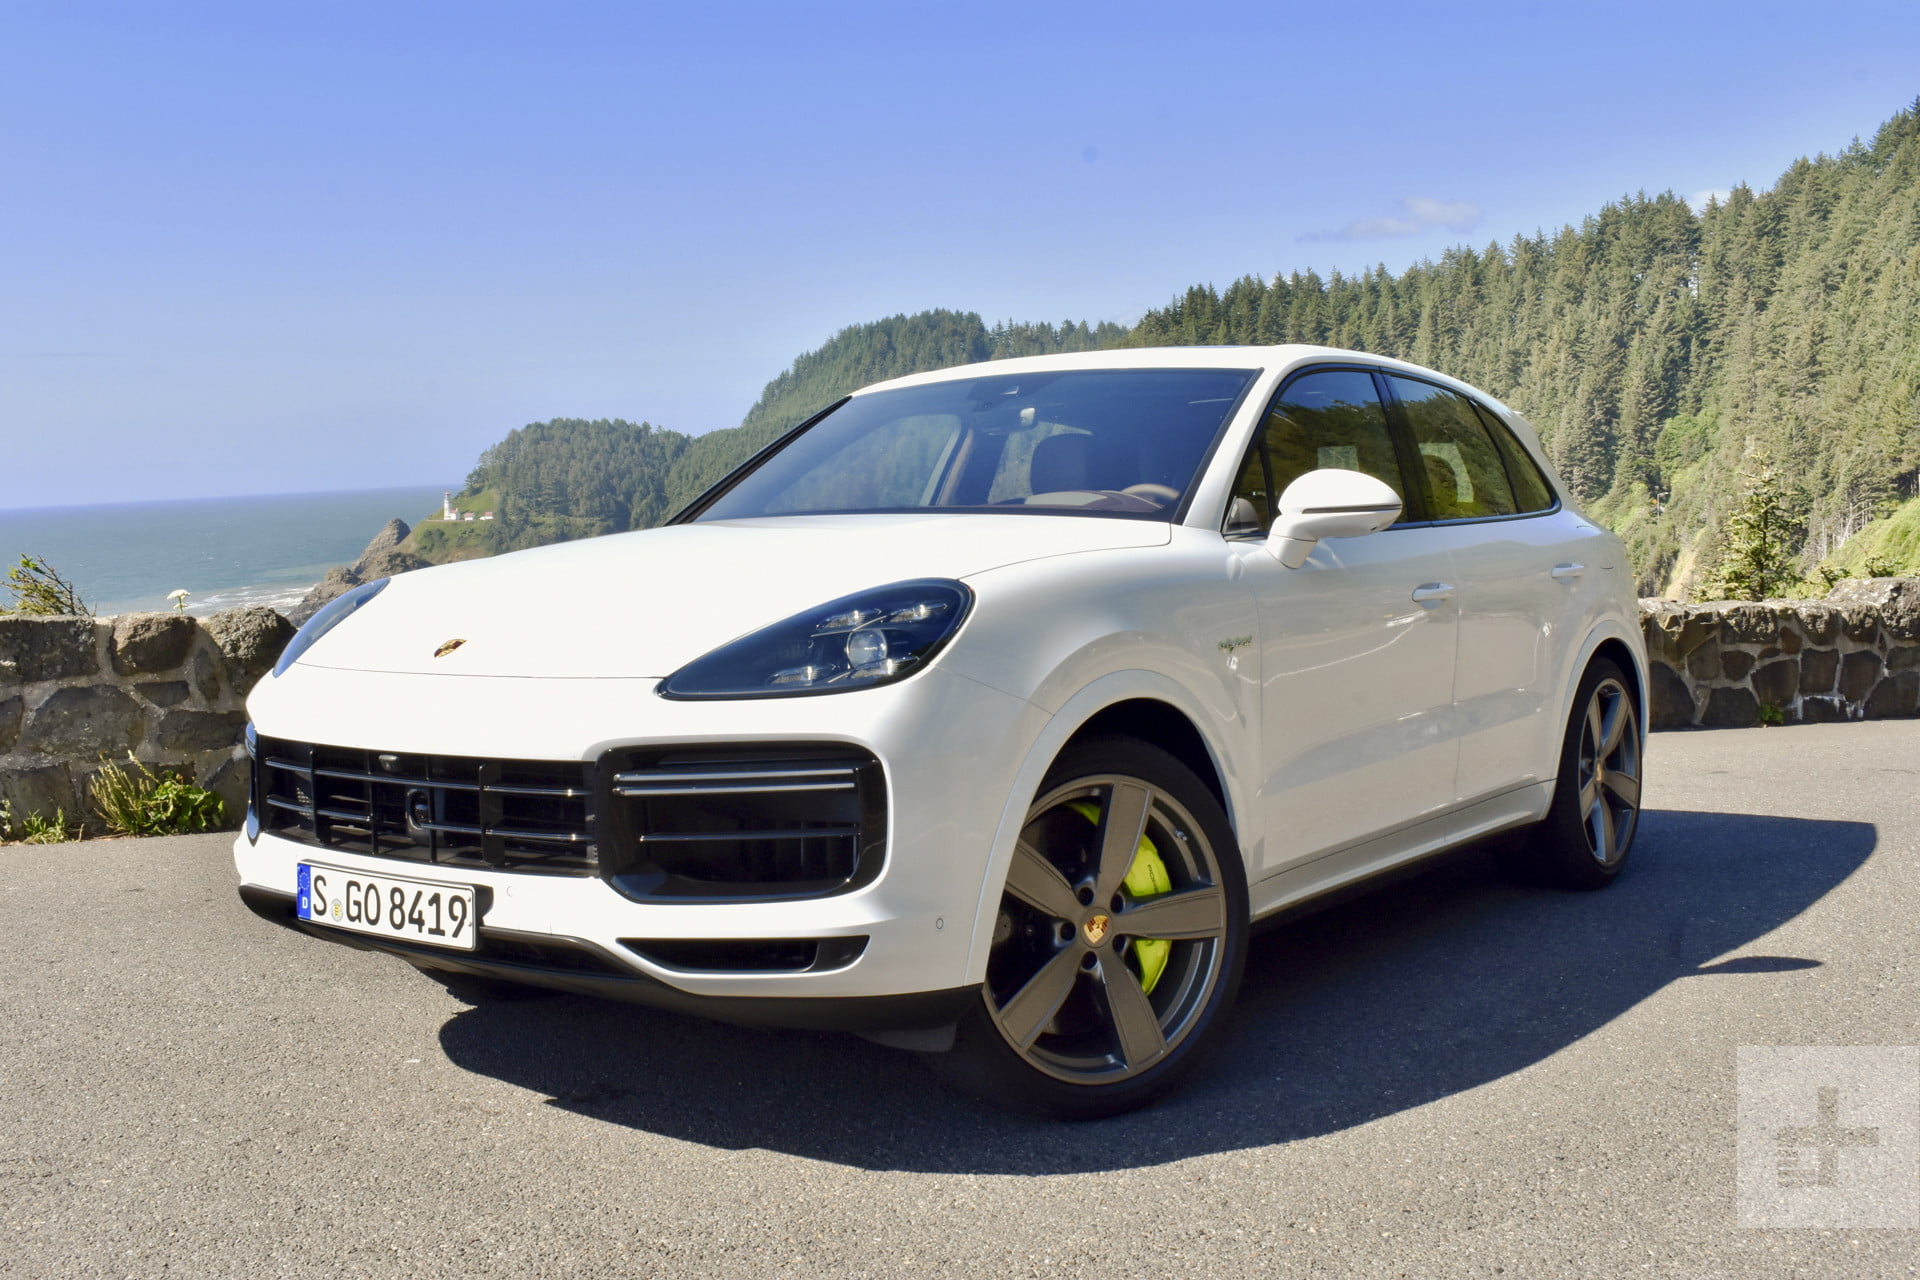 2020 Porsche Cayenne Turbo S E Hybrid First Drive Review Digital Trends